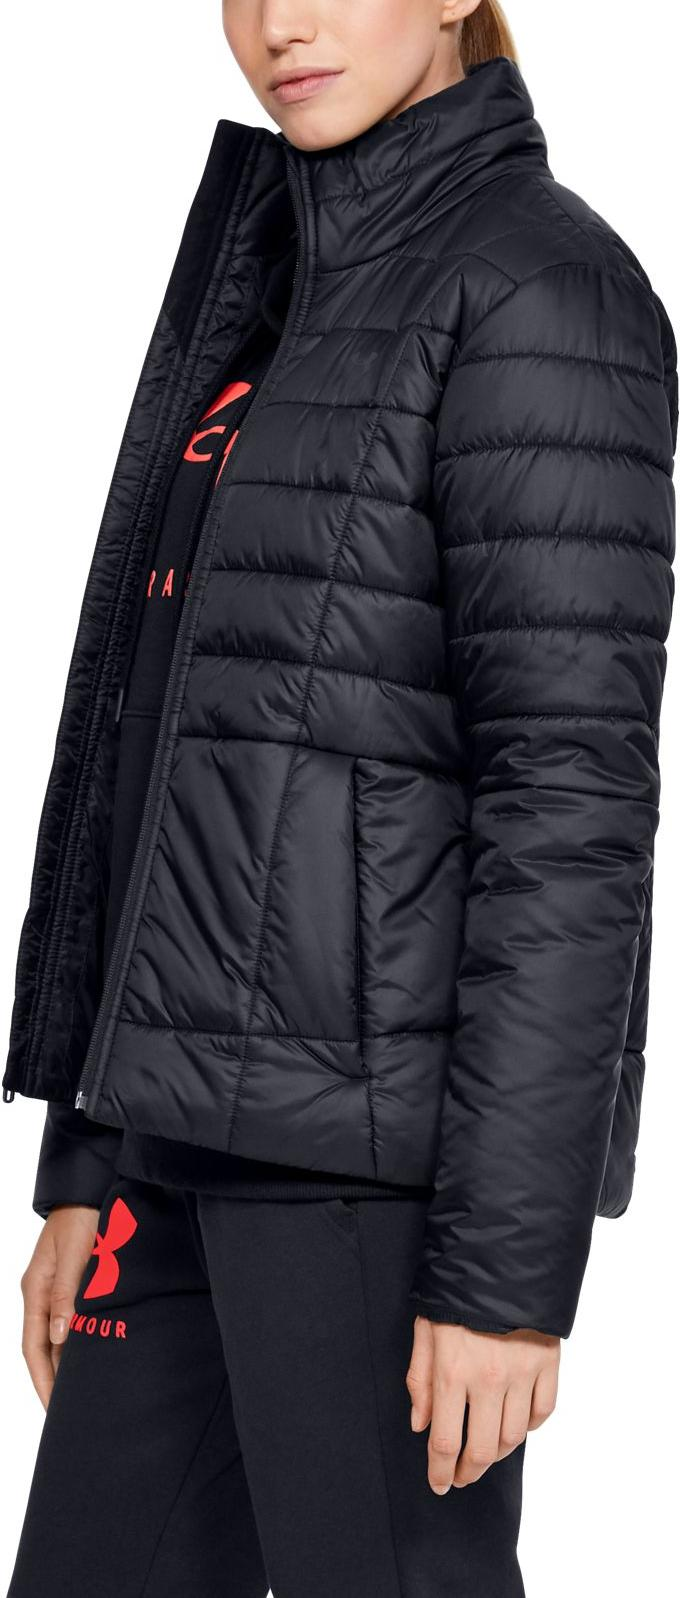 Bunda Under Armour UA Armour Insulated Jacket